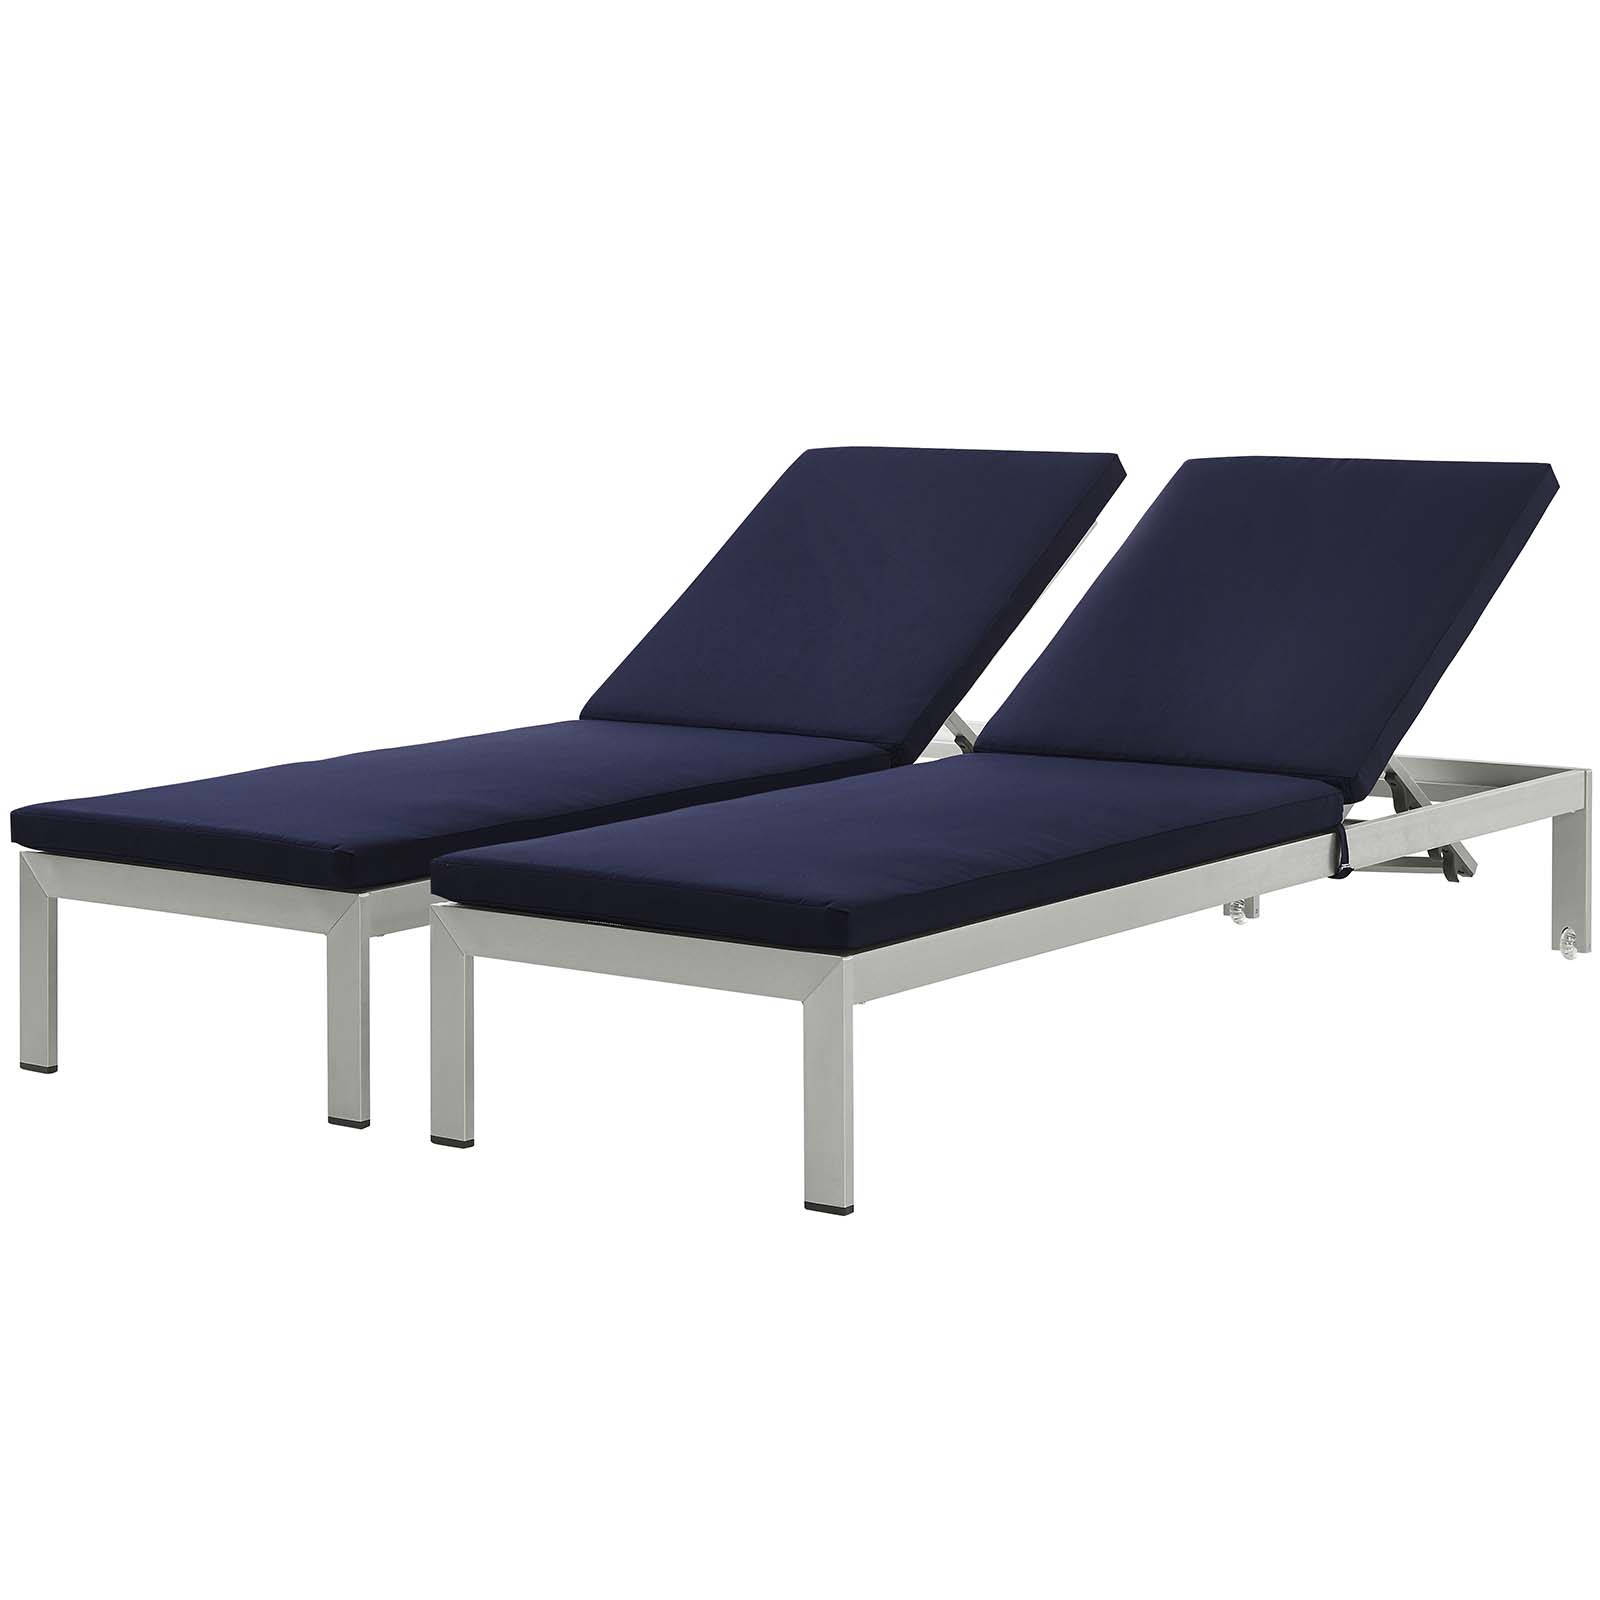 2 Modway Furniture Shore Silver Navy Outdoor Chaise With Cushion Intended For Most Recently Released Shore Aluminum Outdoor Chaise Lounges (View 1 of 25)